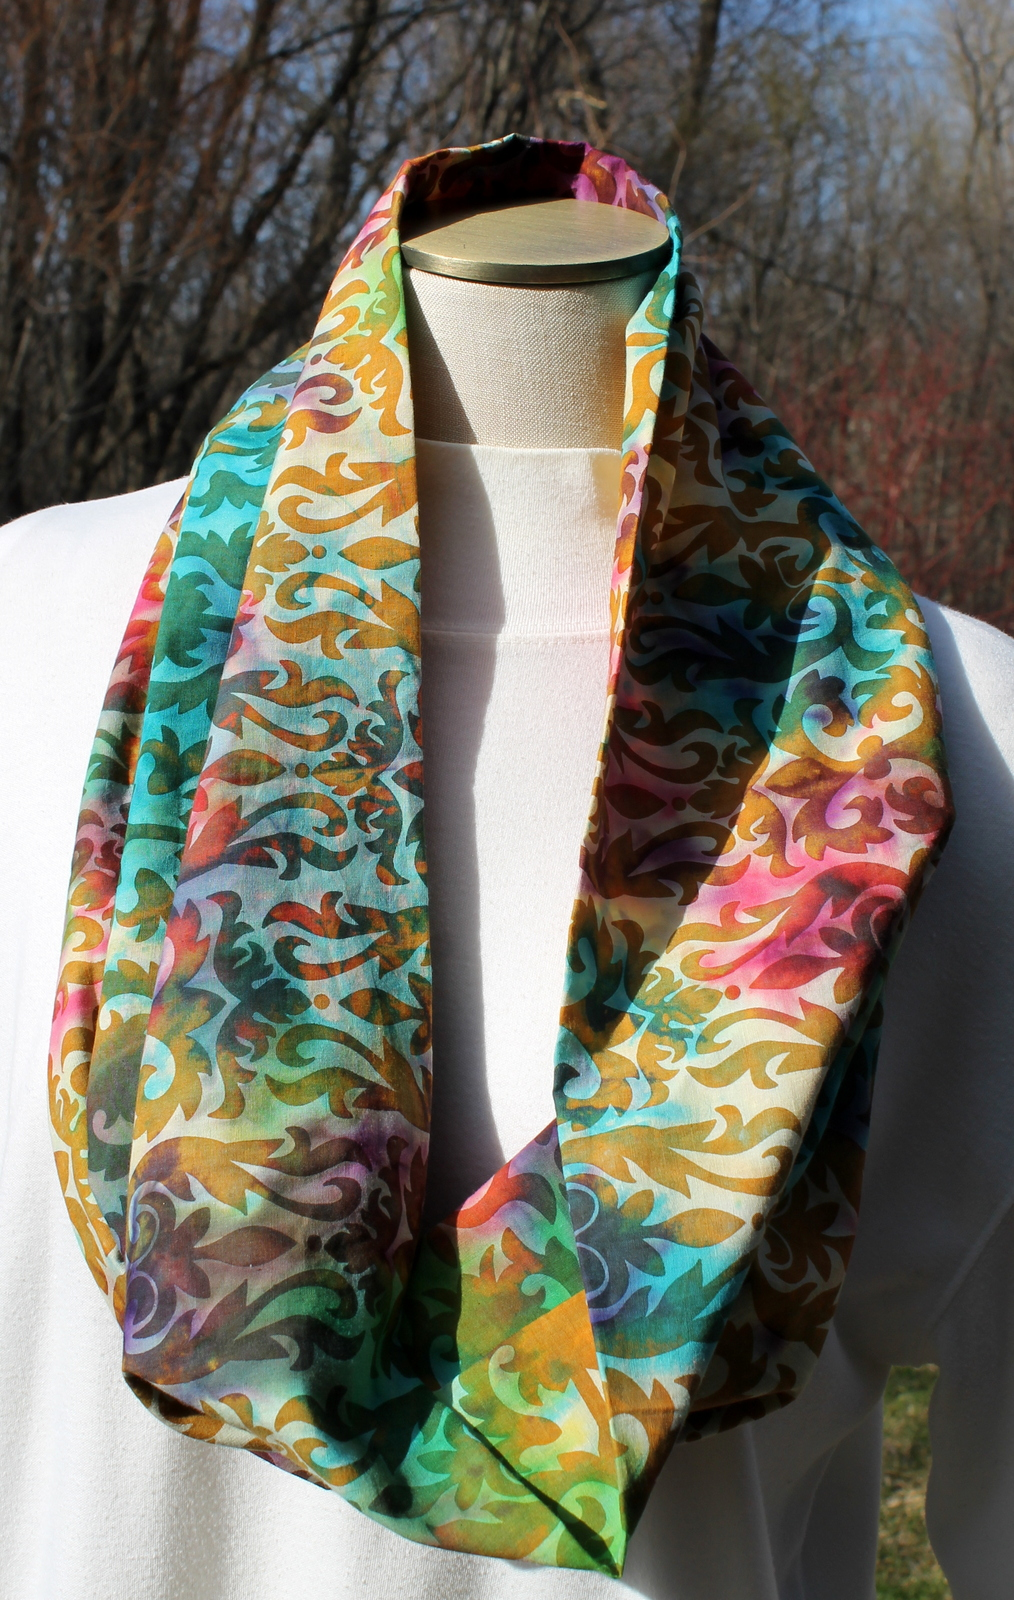 Patterned Multi-Color Cotton Infinity Scarf with Greens, Tans and Purples